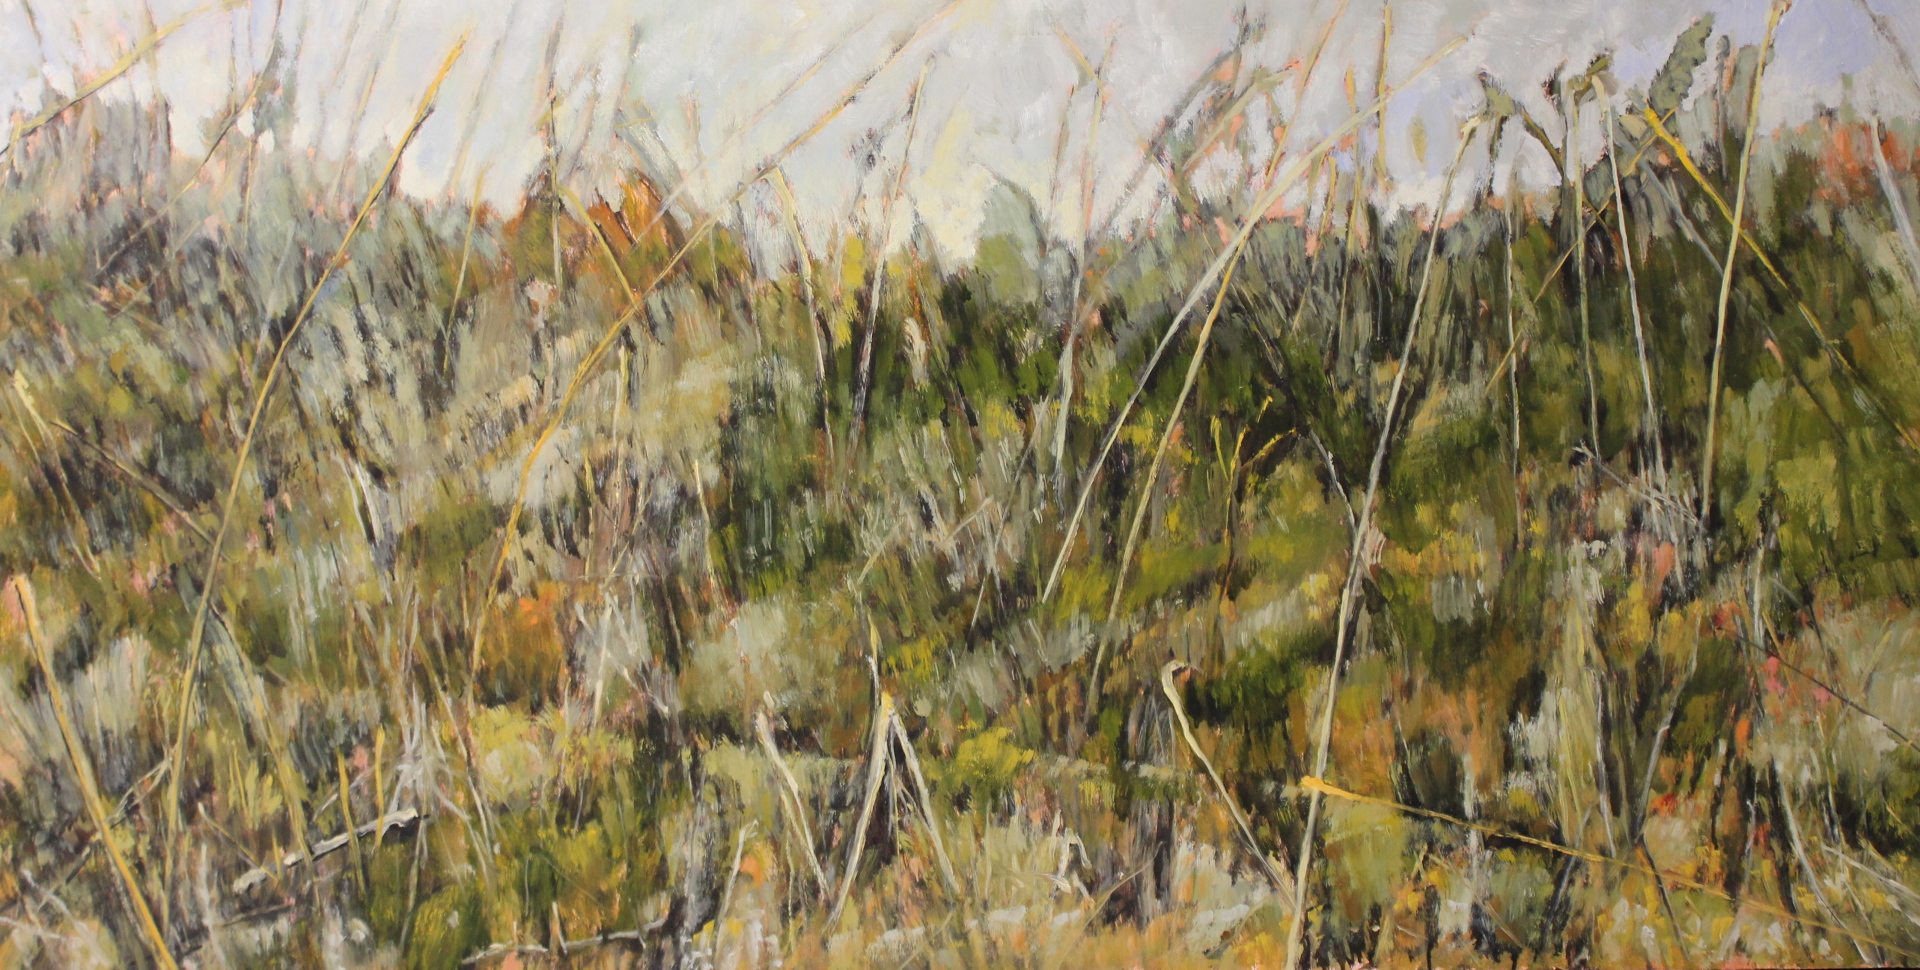 CYPRESS HILLS GRASSES - 25X49 - OIL ON PANEL - 2010